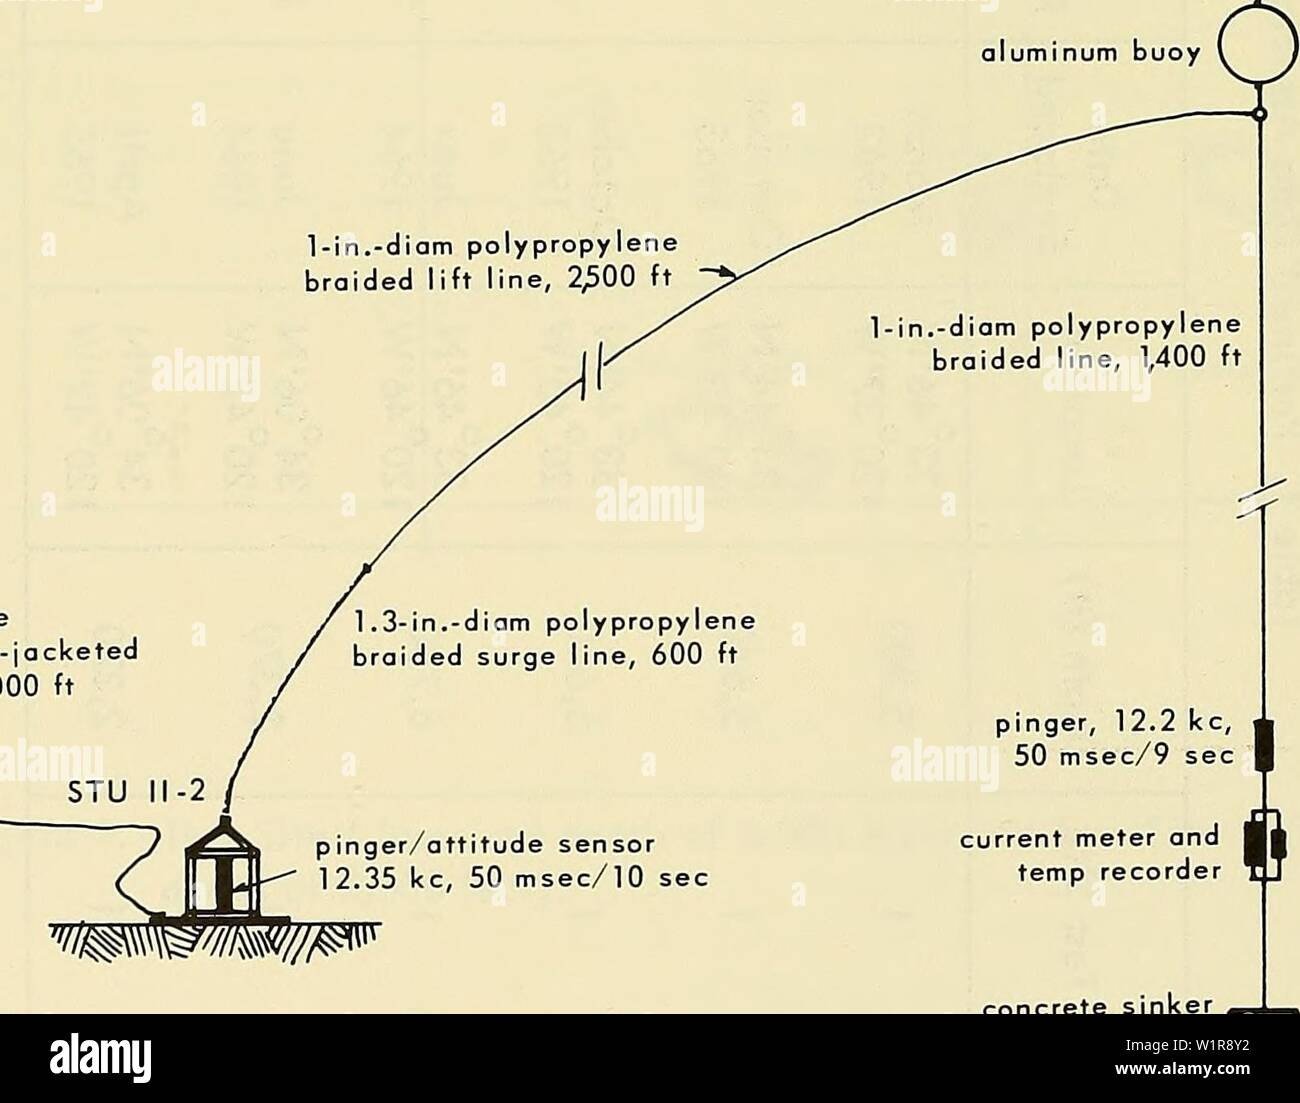 Archive image from page 9 of Deep-ocean biodeterioration of materials (1965). Deep-ocean biodeterioration of materials  deepoceanbiodete06mura Year: 1965 grappling wire (poly ethylene-jacketed wire rope), 6,000 ft wm/nF l-in.-diam polypropylene braided lift line, 2,500 ft aluminum buoy ( ) hooks ' 5/16-in.-diam stainless steel wire, 300 ft pinger, 12.1 kc, ft 50 msec/11 sec I 5/16-in.-diam stainless steel wire, 400 ft T 240 ft 1 aluminum buoy    concrete sinker Figure 2. STL) 11-2 Complex as designed. - Stock Image